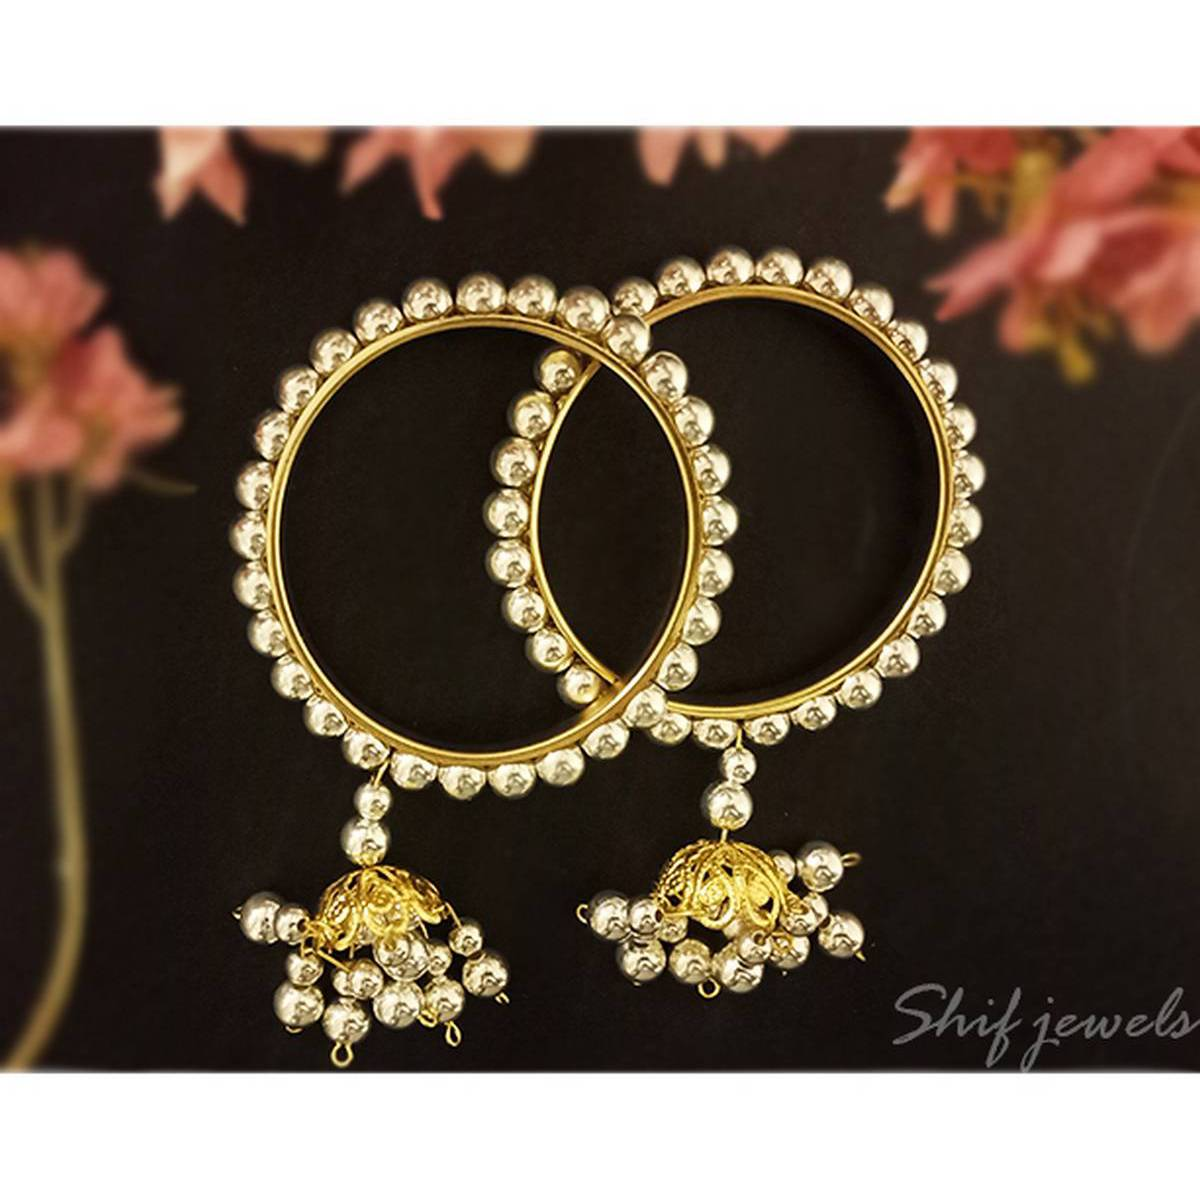 Silver Pearls with Jhumka Bracelet Bangle Set for Women and Girls